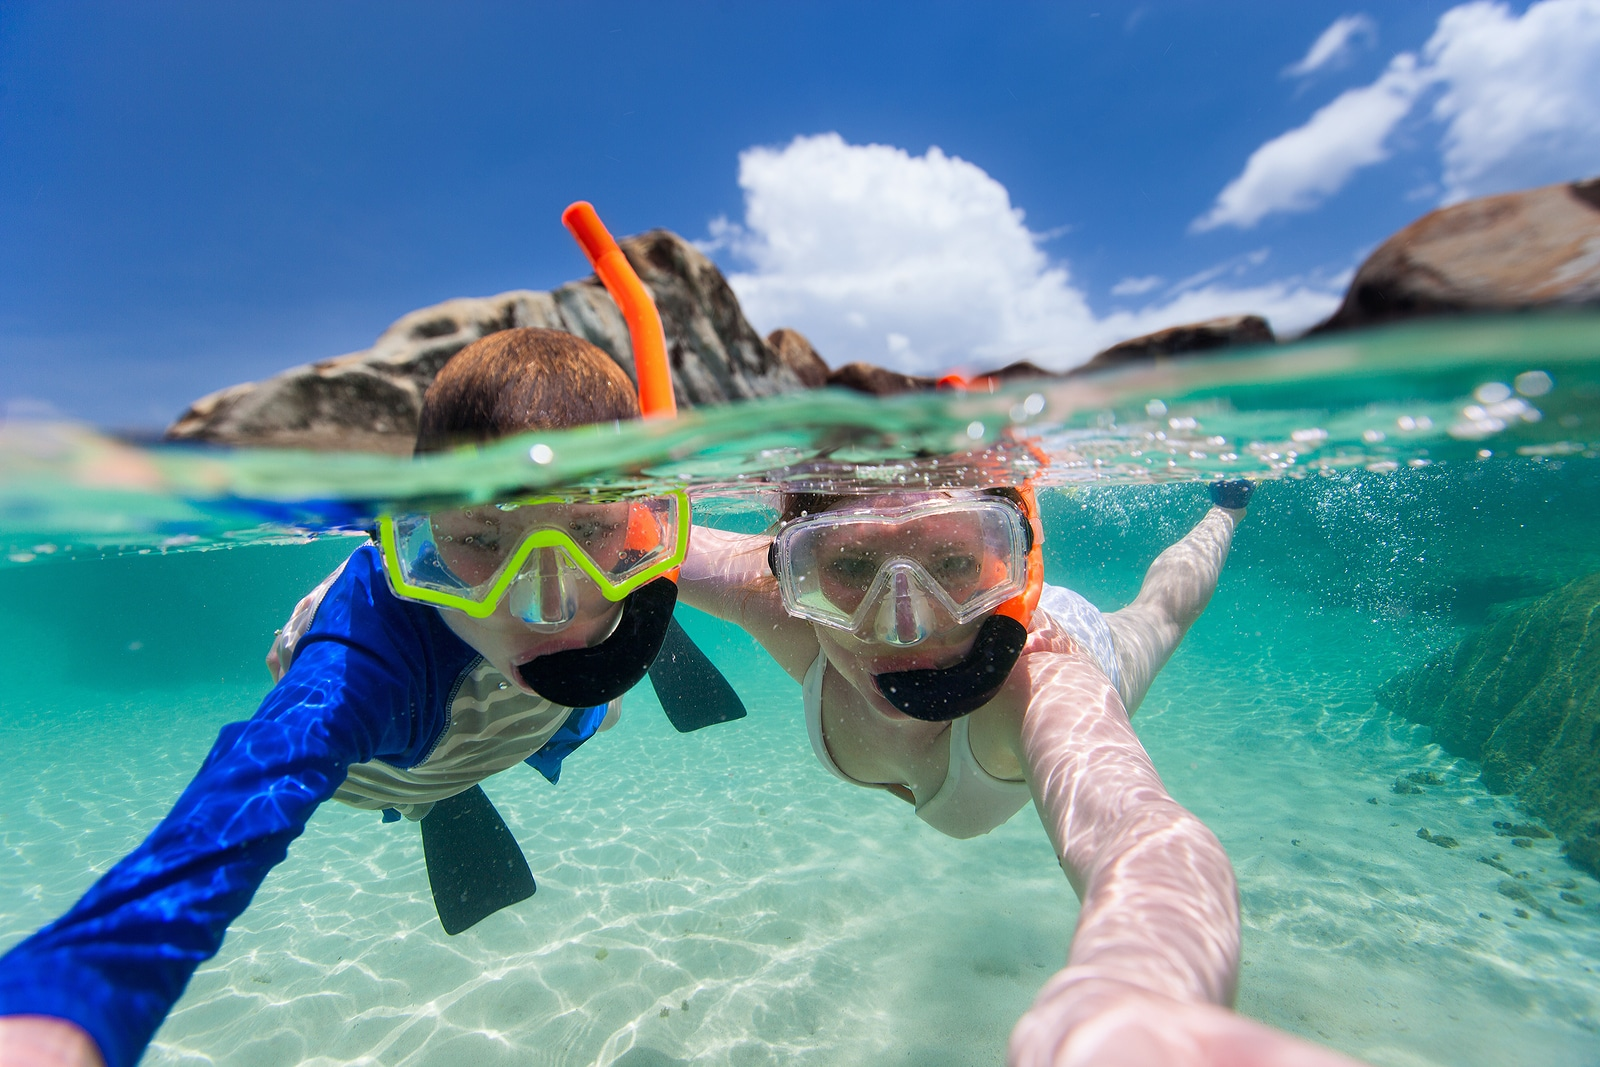 Visiting Cabo Pulmo National Marine Park with Grand Solmar Timeshare